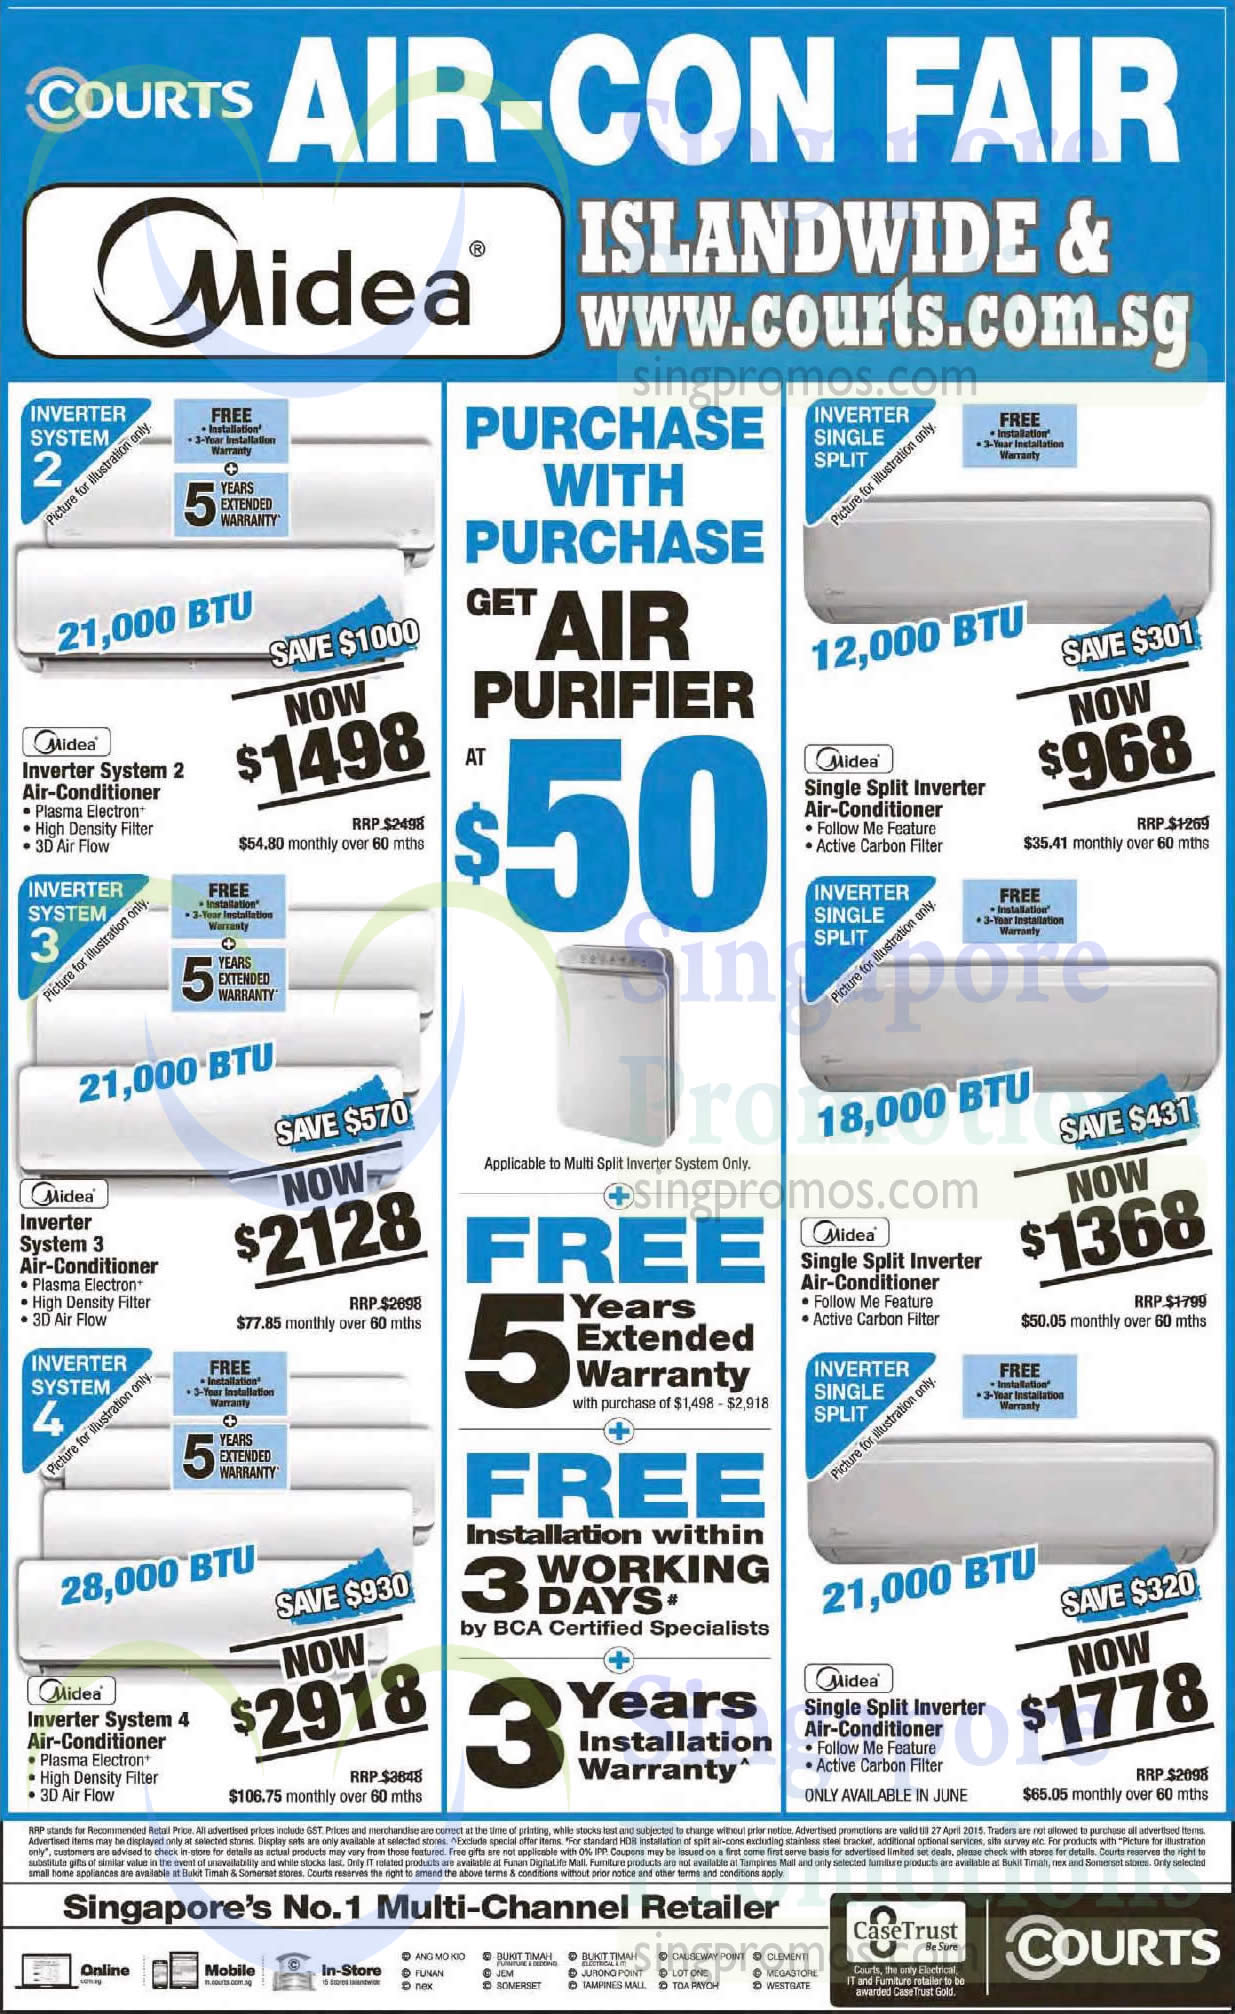 Midea Air Conditioners, Purchase With Purchase, Inverter System 2, Inverter System 3, Inverter System 4, Single Split Inverter